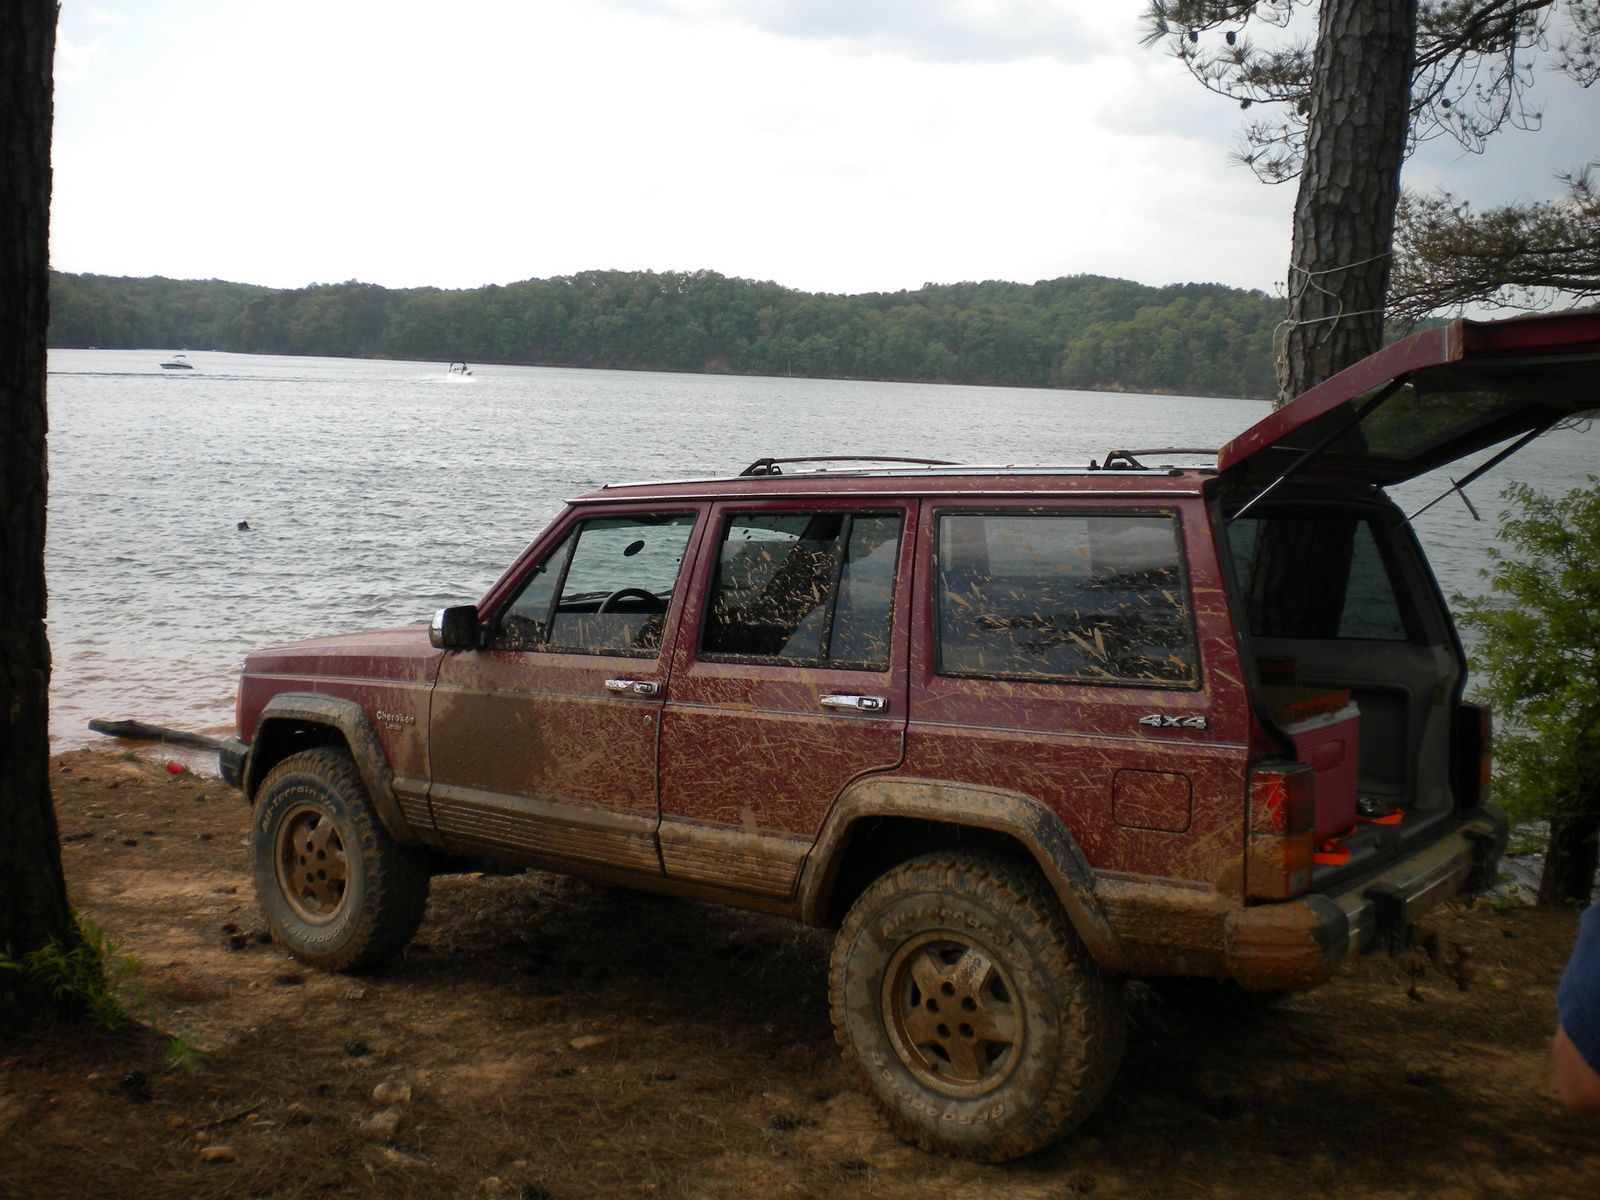 1989 Jeep Cherokee I Once Saw One In Traffic With A For Sale